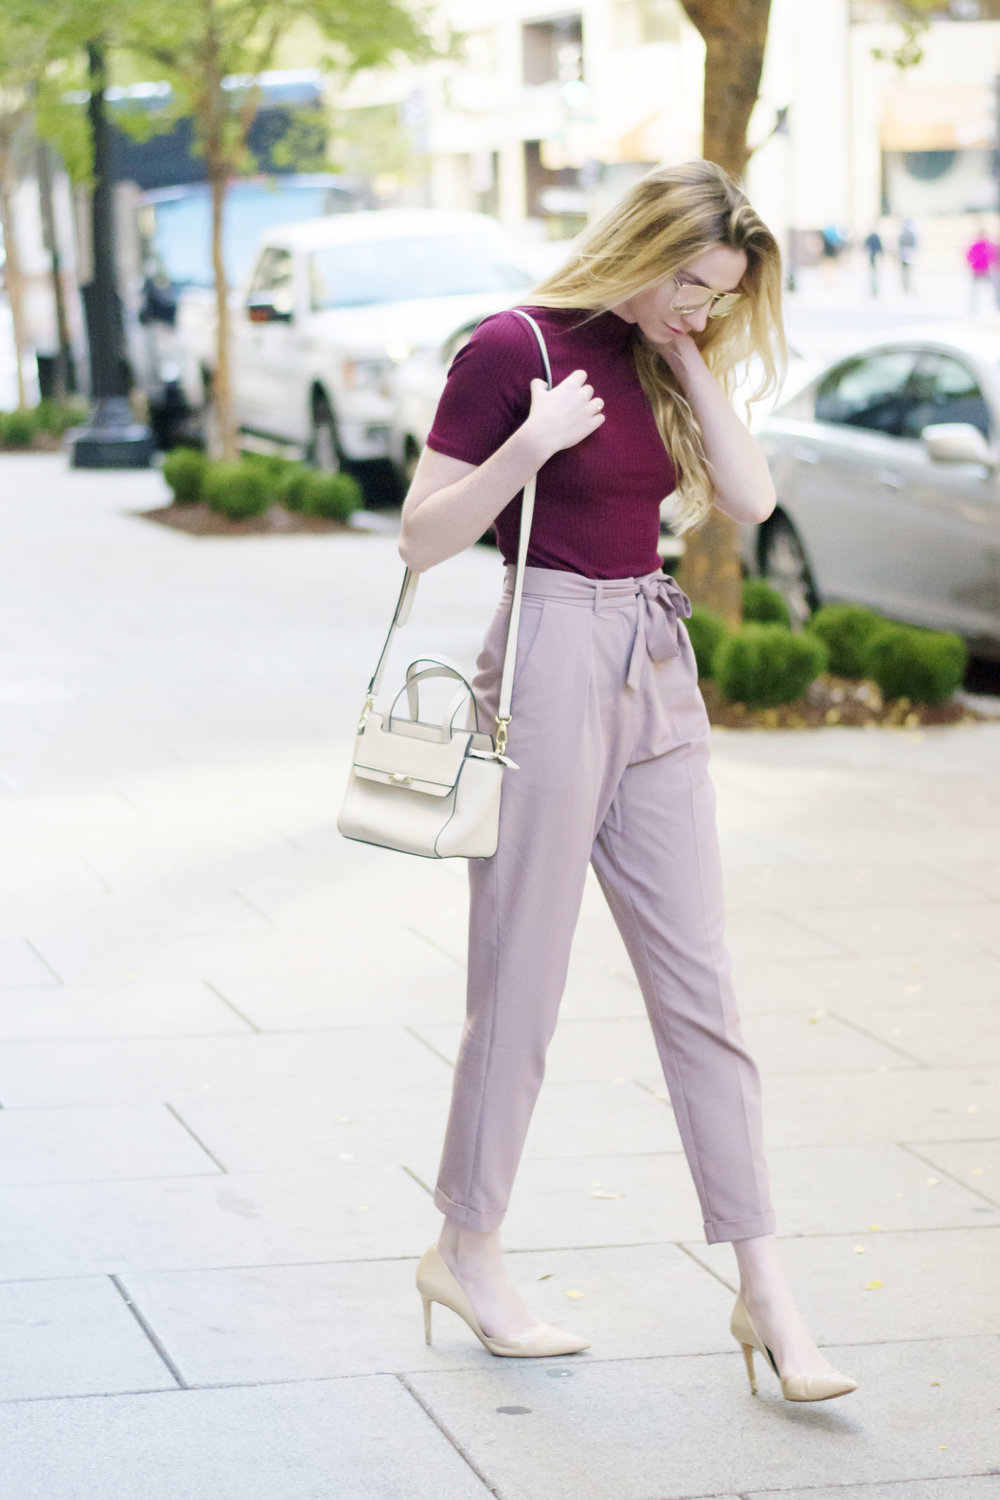 Maroon and Blush Fall Style (via Chic Now)